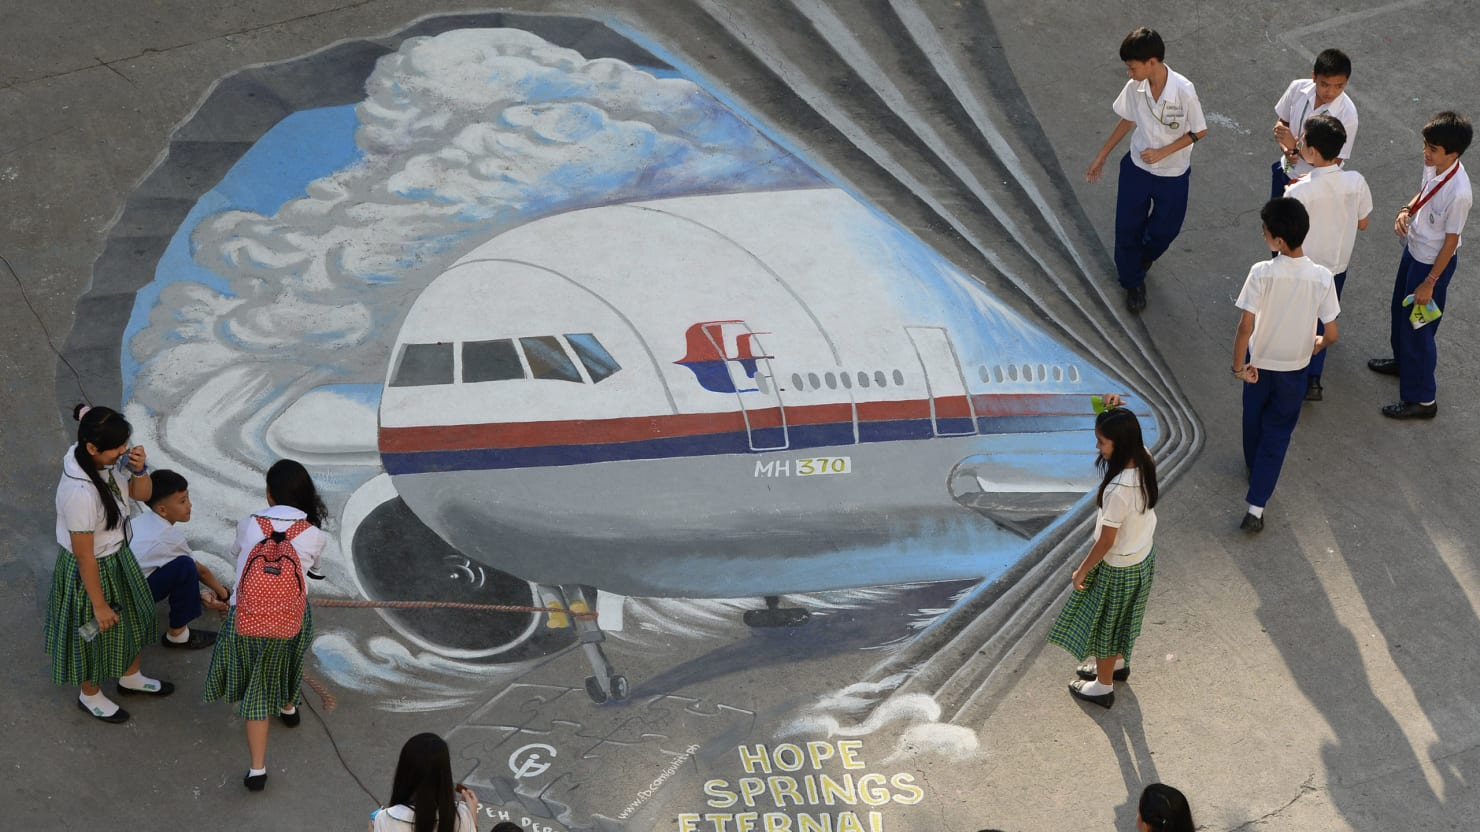 Malaysia's Sinister Timeline for Flight 370 Unravels